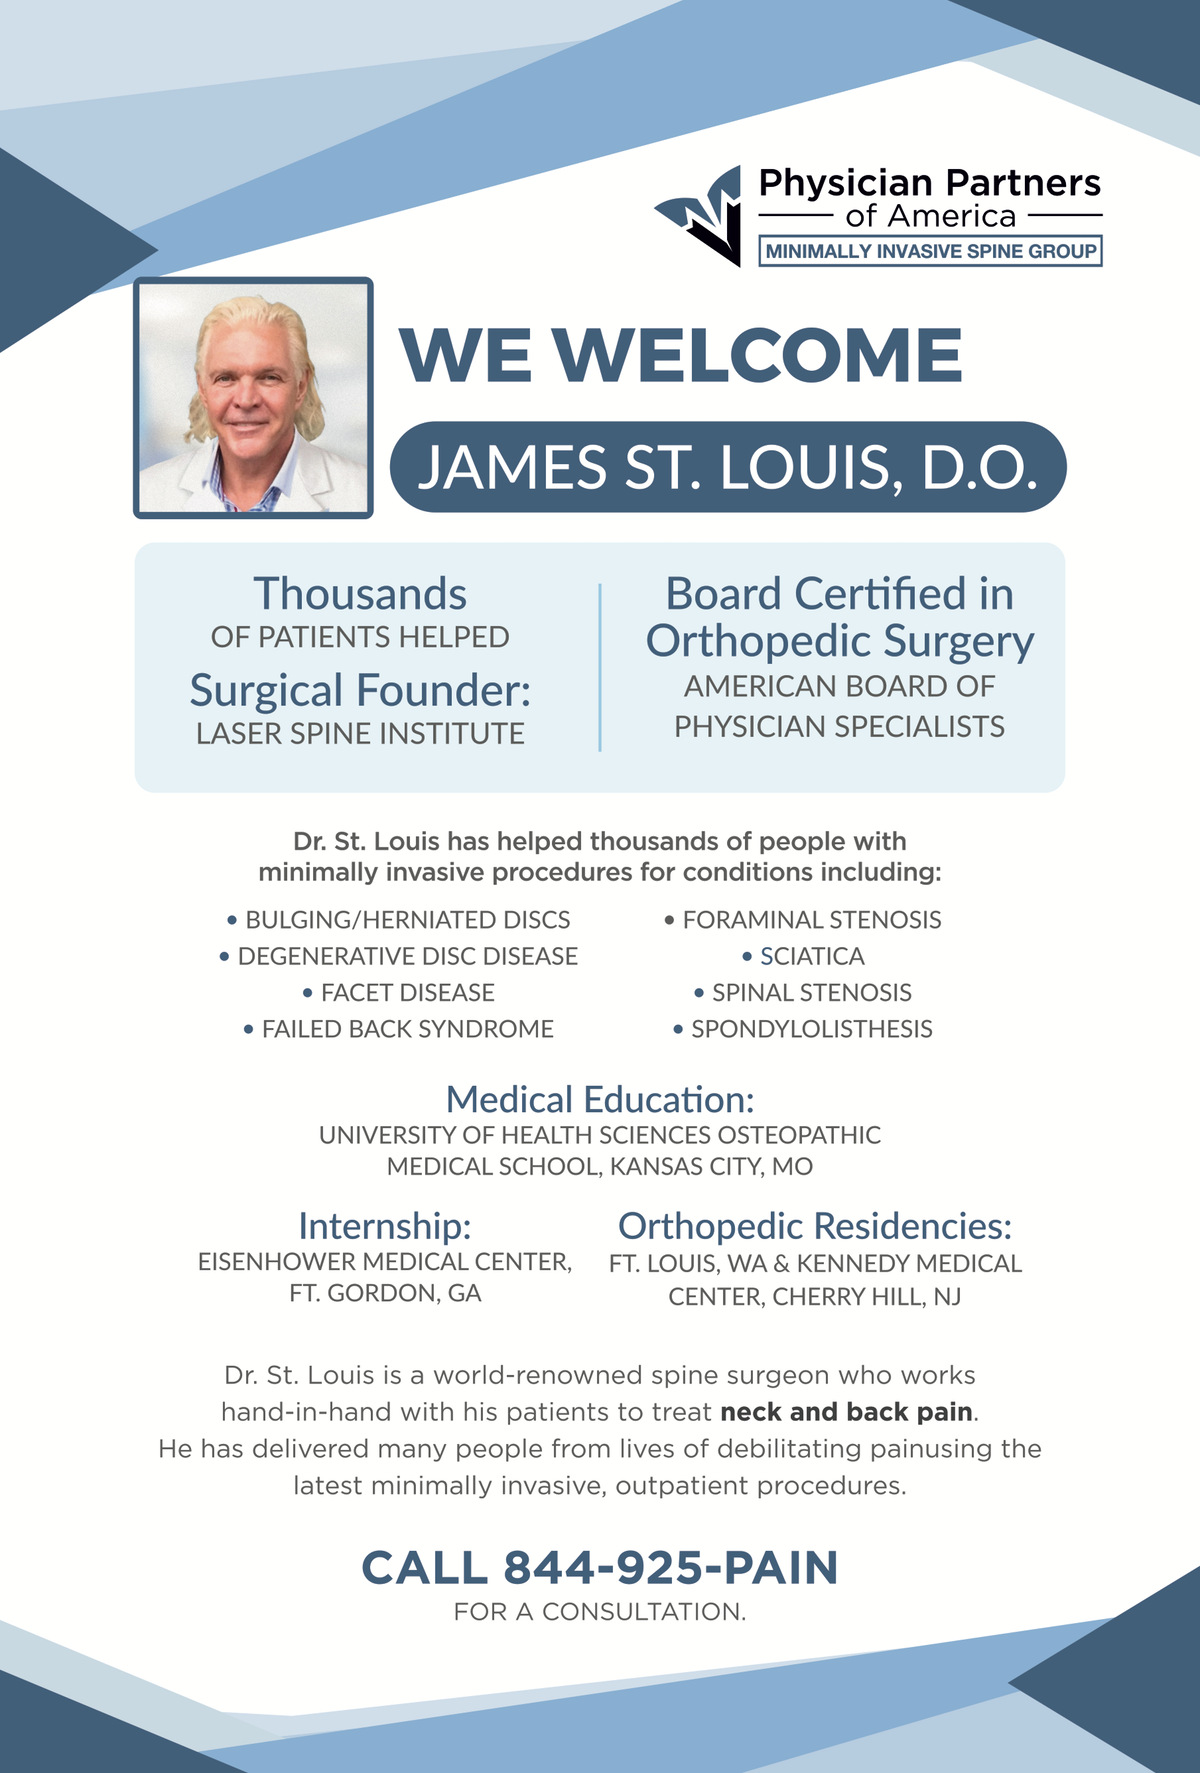 Dr. James St. Louis Welcome Poster